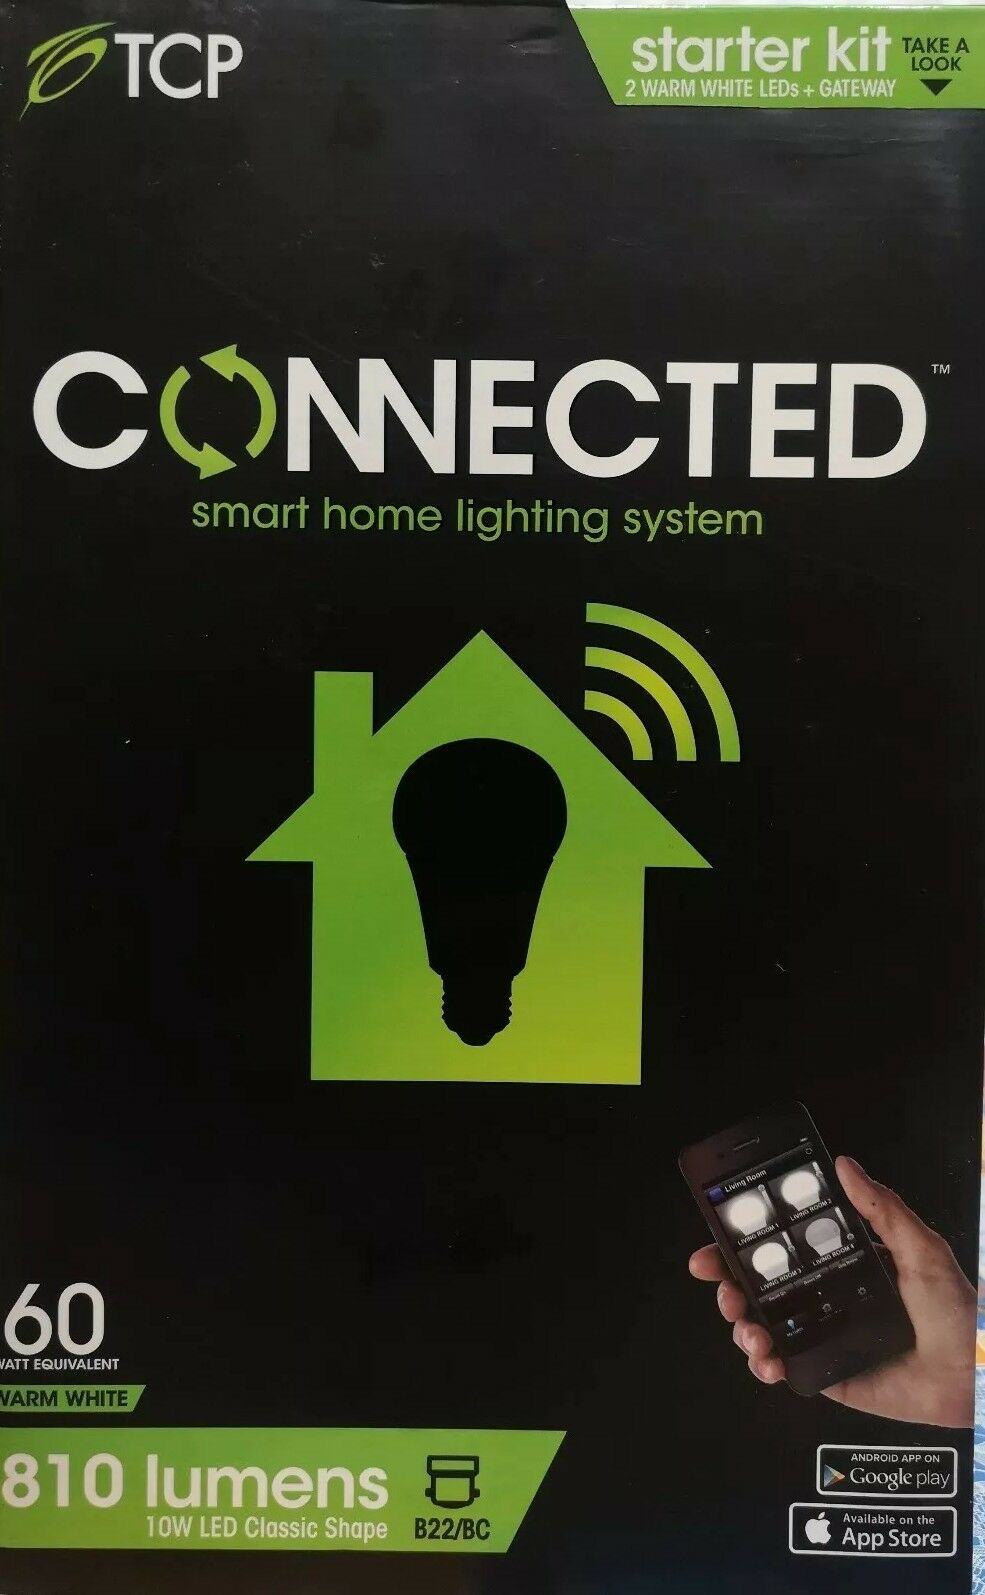 7 × TCP Connected SmartHome Starter Kit complete with 2 B22 BC bulbs